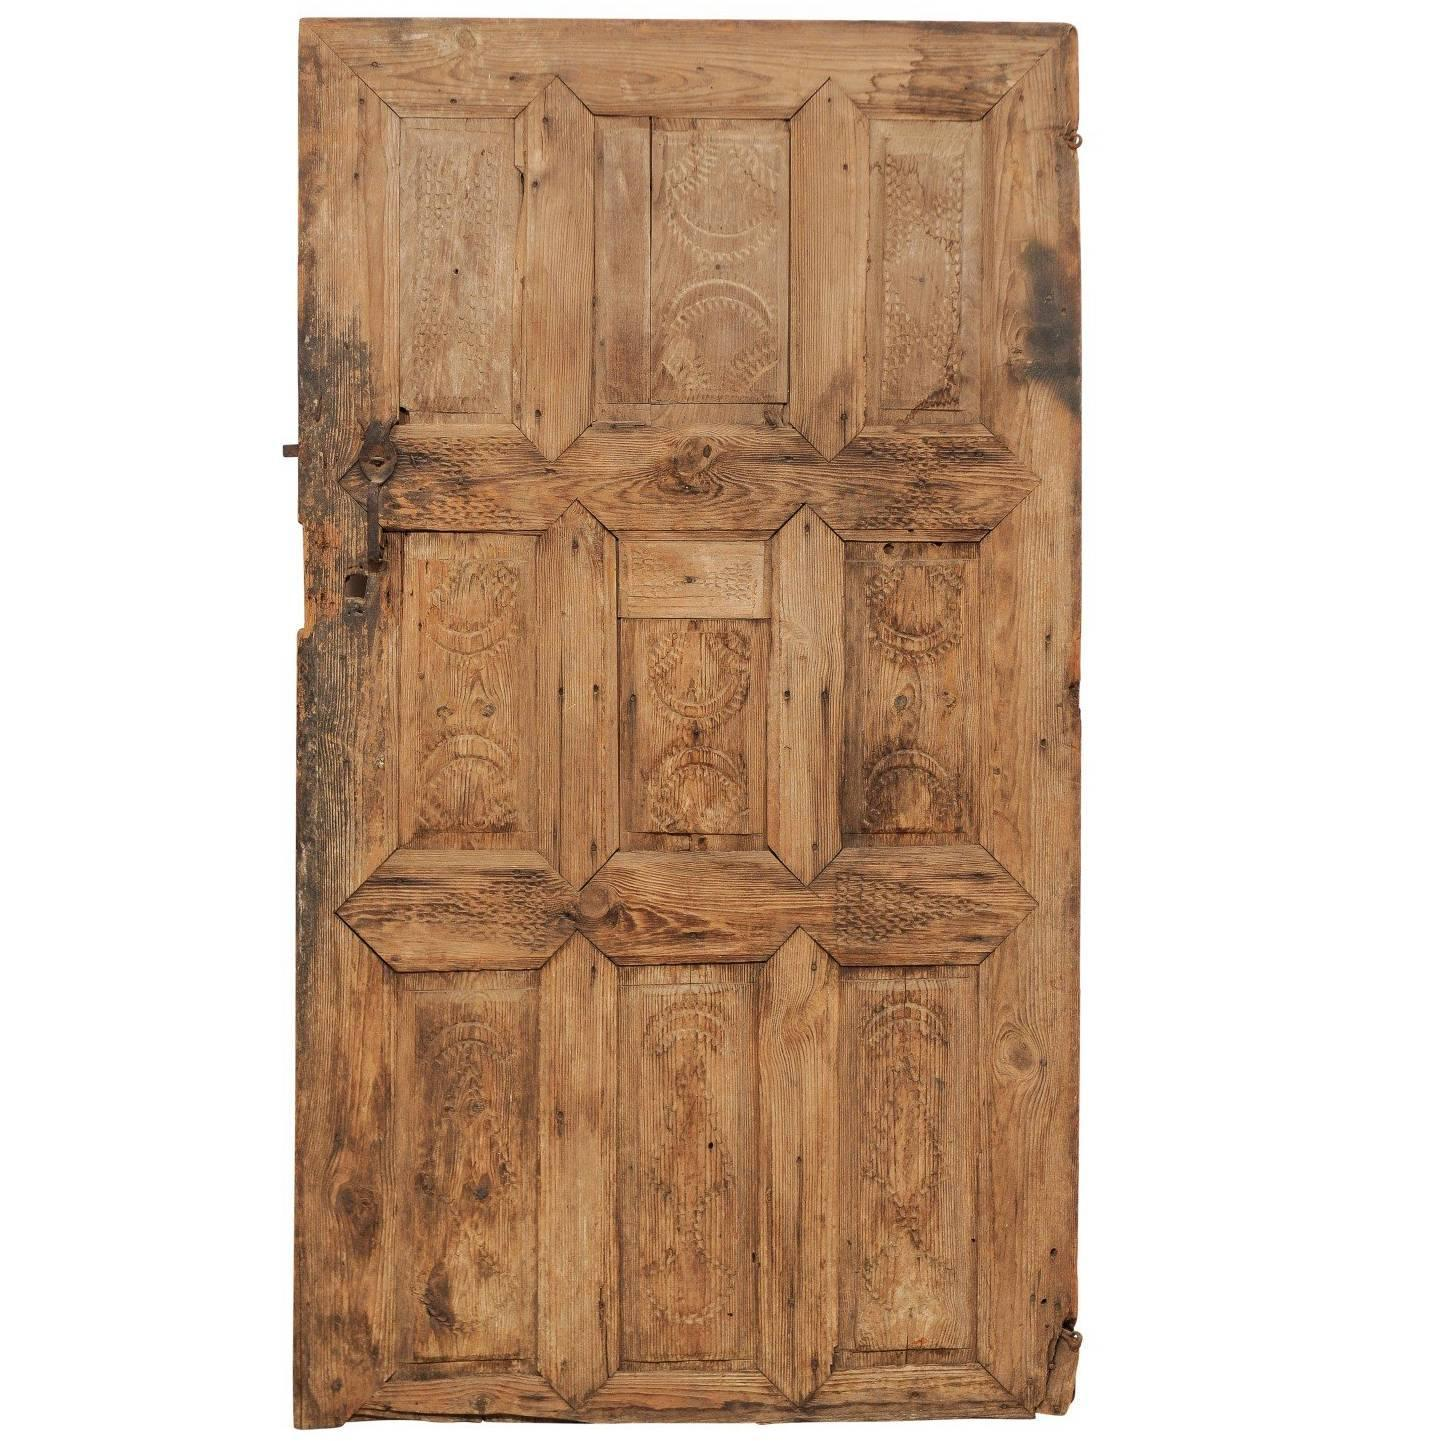 Single 19th Century European Rustic Wood Door with Delicate Carved Pattern - Antique And Vintage Doors And Gates - 1,296 For Sale At 1stdibs